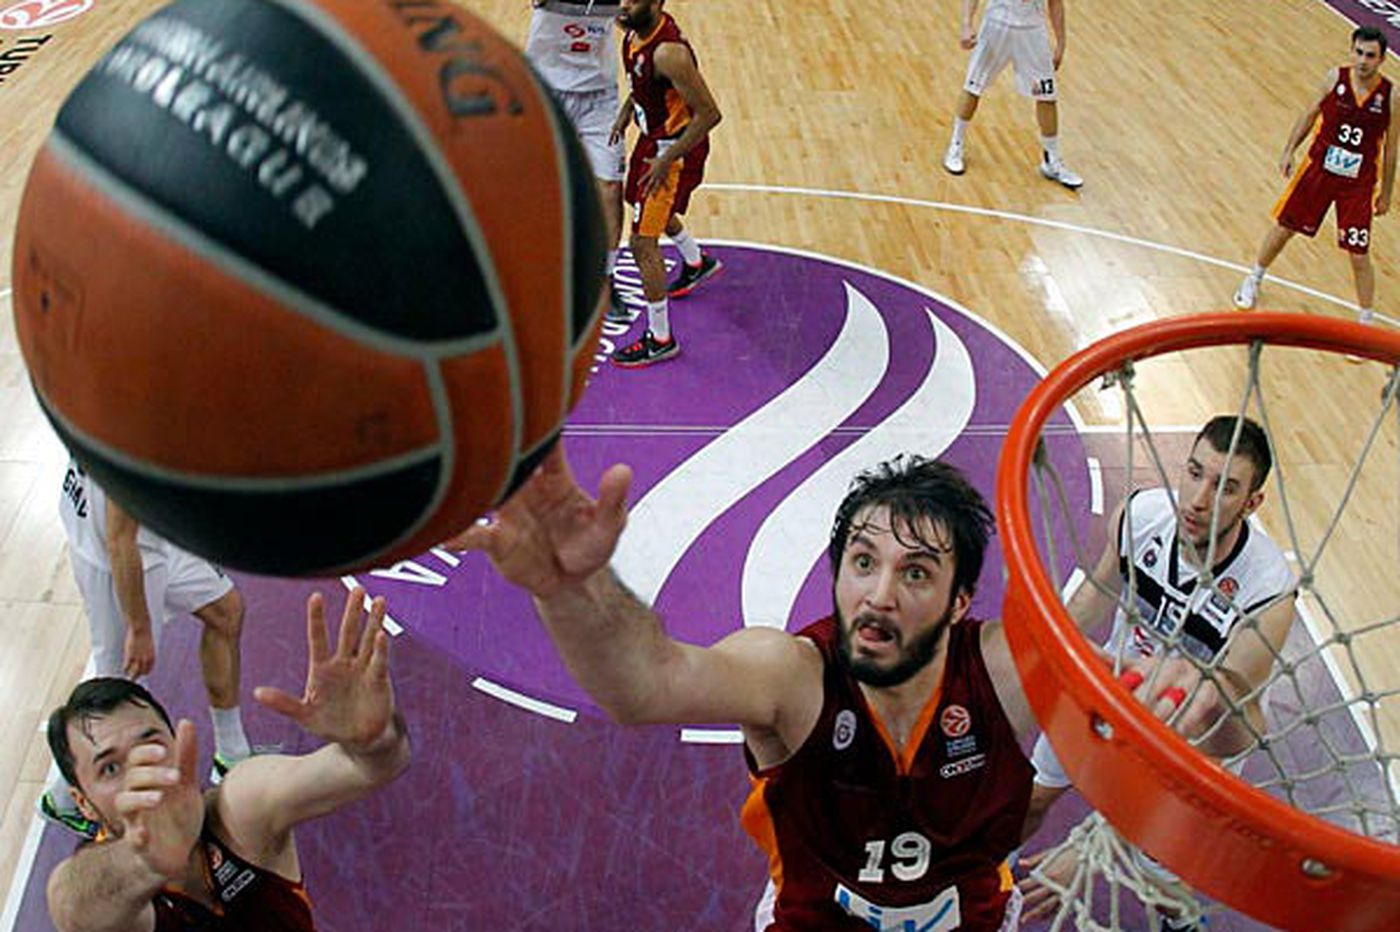 Turkish big man Aldemir set to join Sixers